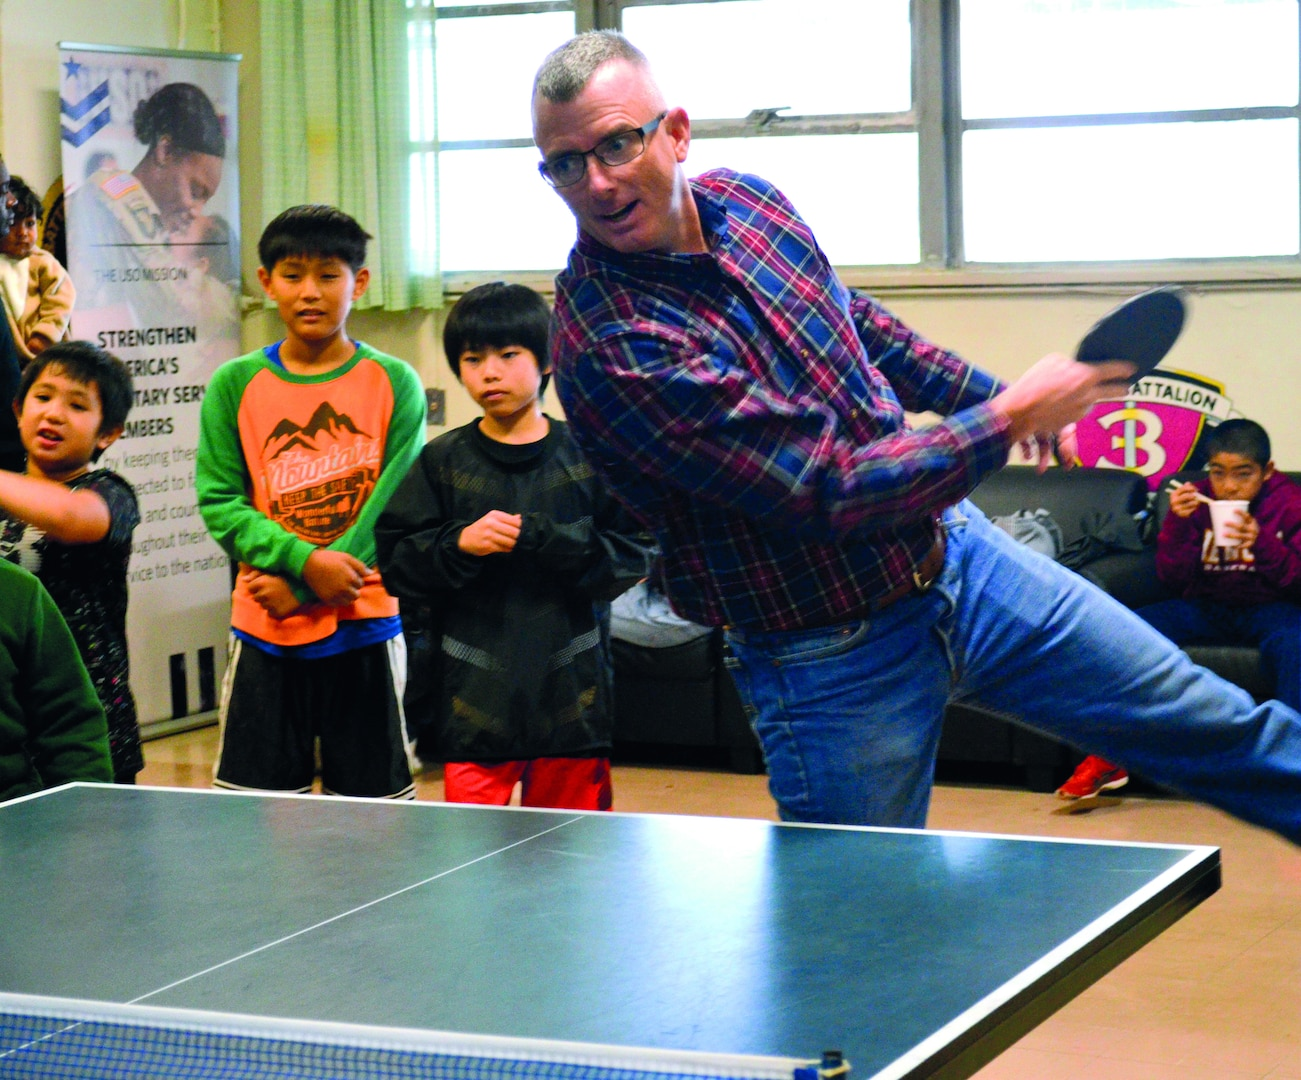 Col. Perry plays table tennis with a local child at the 38th Camp Schwab/USO Christmas Children's Day in Camp Schwab USO Dec. 7, 2019.